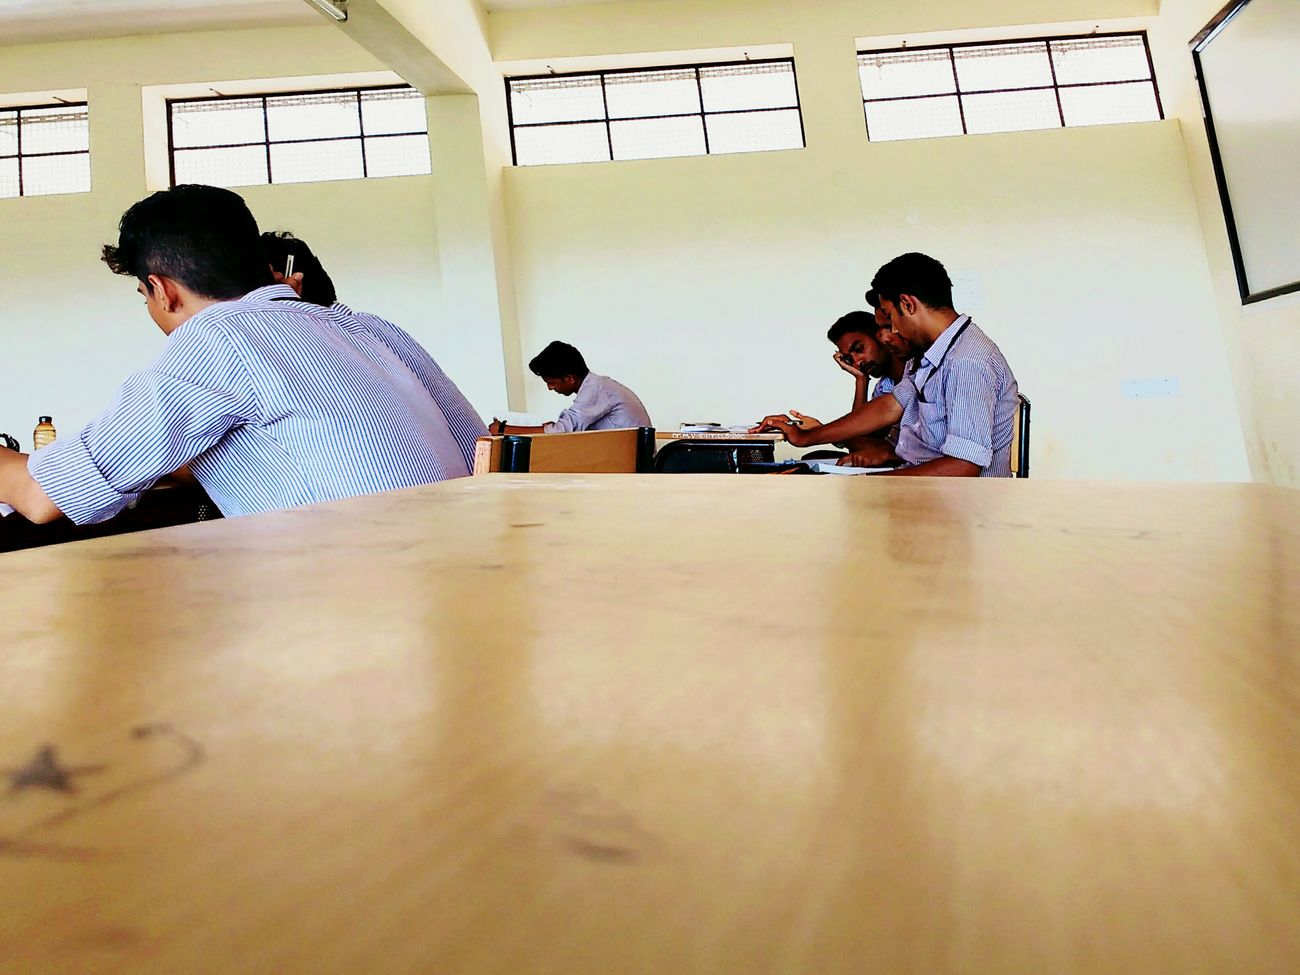 Exam_time Exam_fever First Eyeem Photo